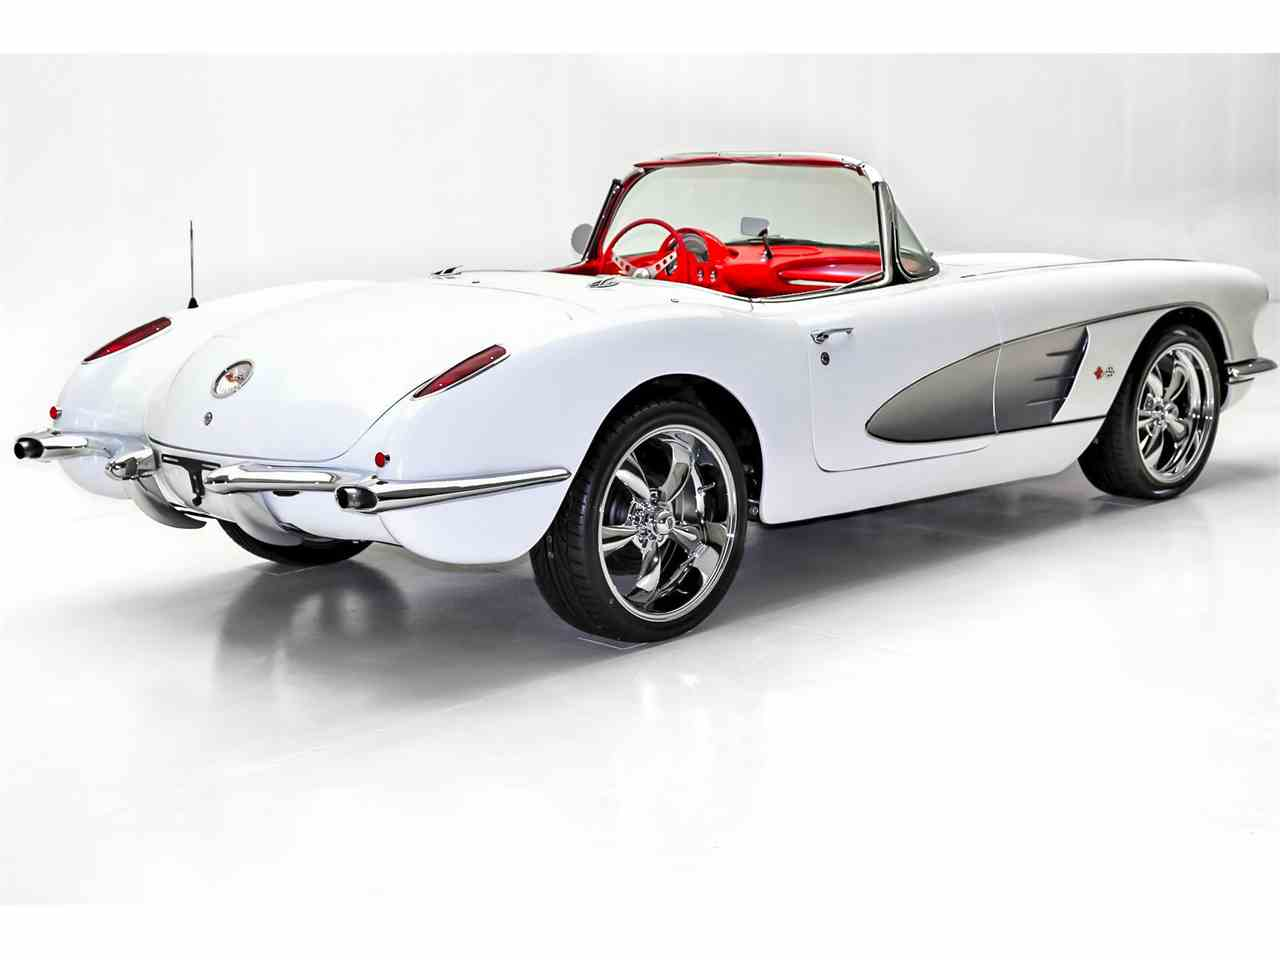 Large Picture of 1959 Corvette located in Des Moines Iowa - $86,900.00 - JRF4